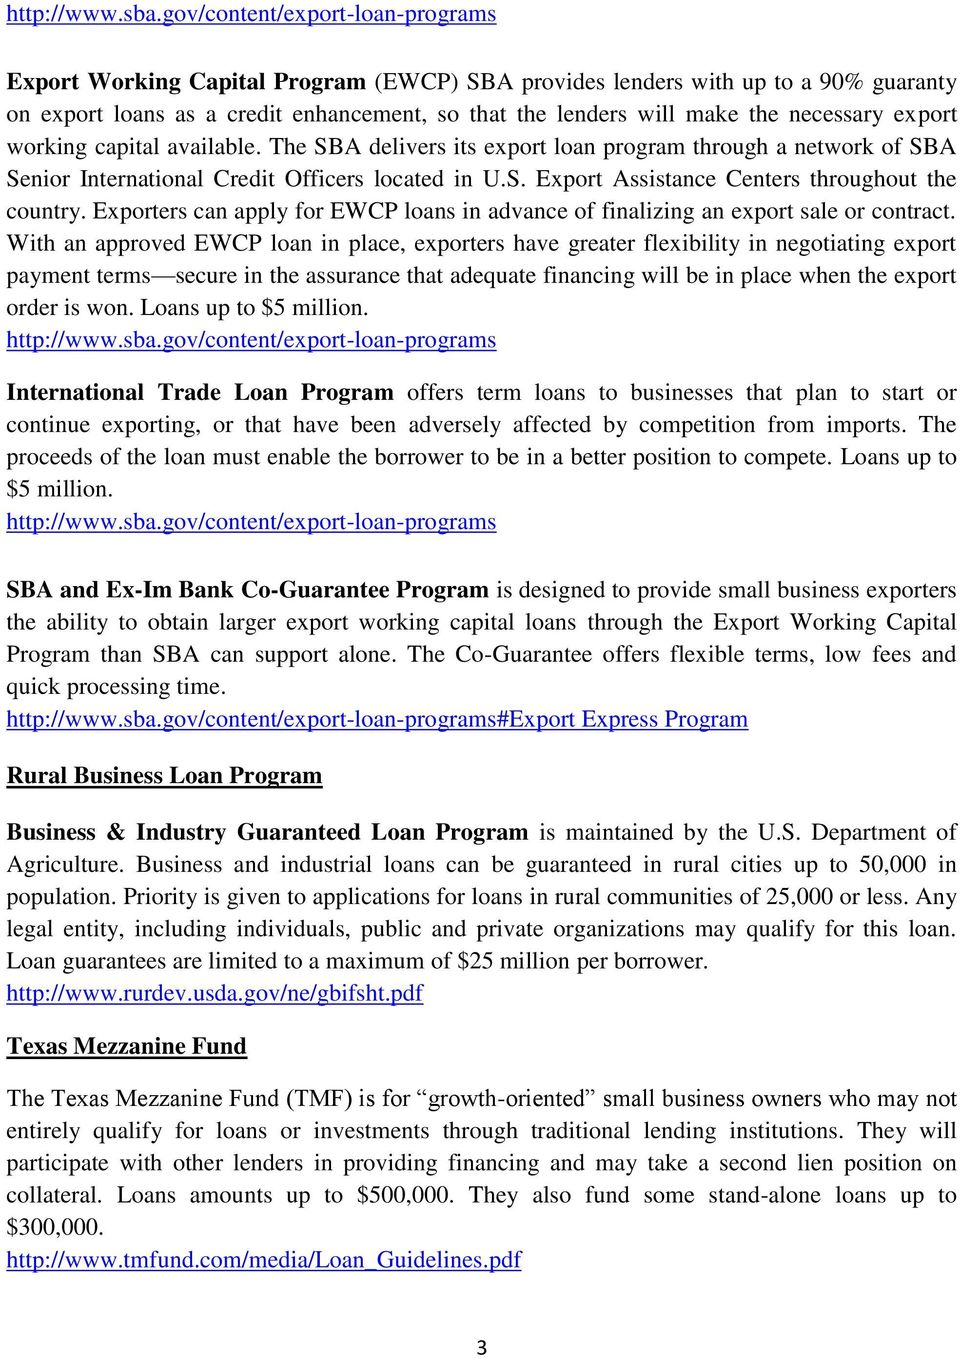 necessary export working capital available. The SBA delivers its export loan program through a network of SBA Senior International Credit Officers located in U.S. Export Assistance Centers throughout the country.